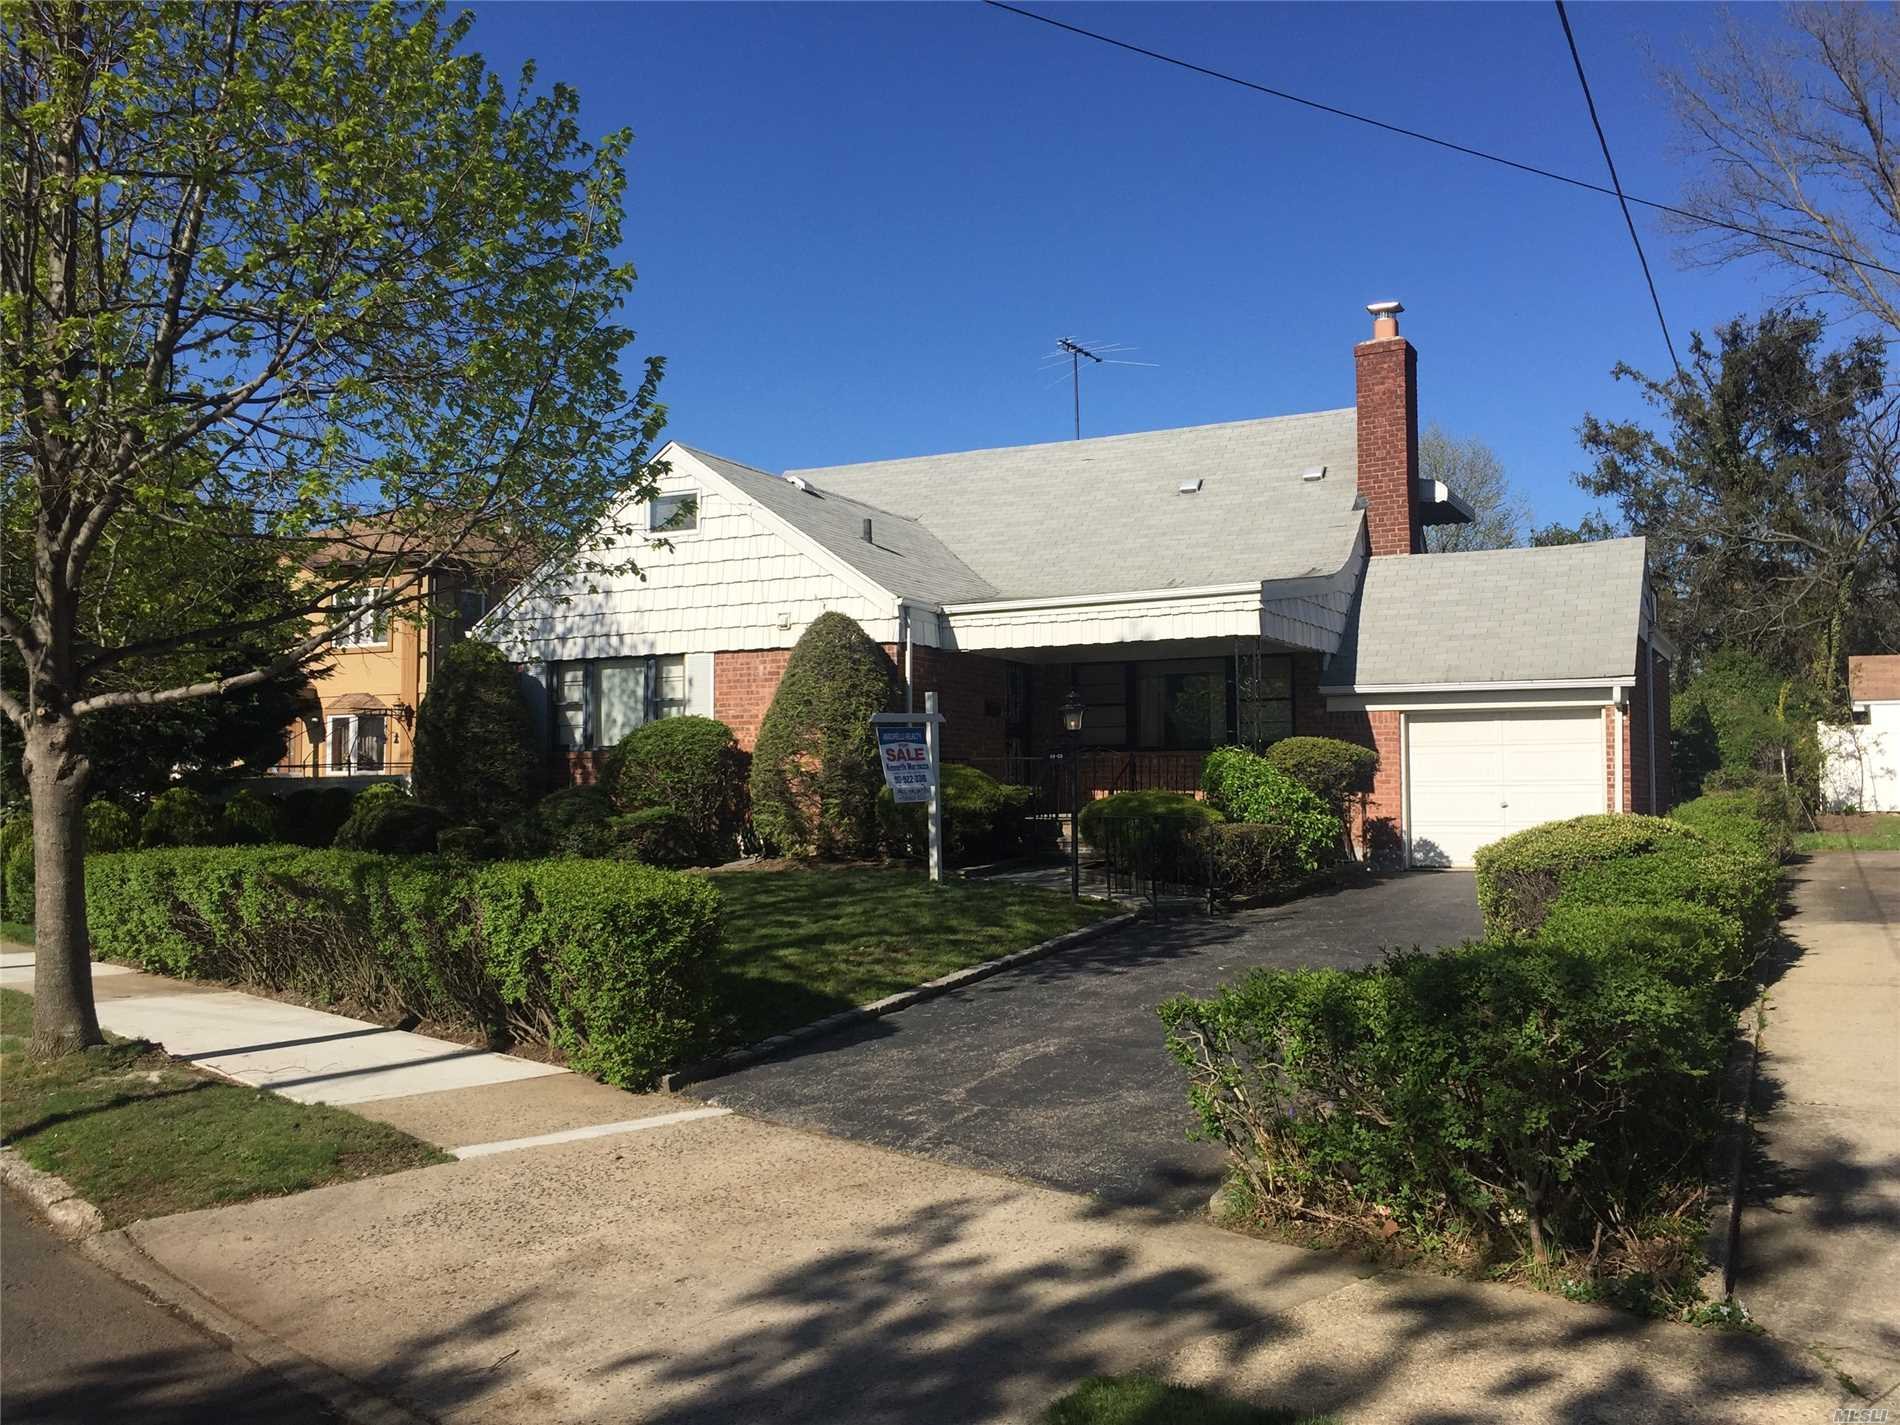 Property for sale at 49-09 Weeks Lane, Fresh Meadows NY 11365, Fresh Meadows,  New York 11365